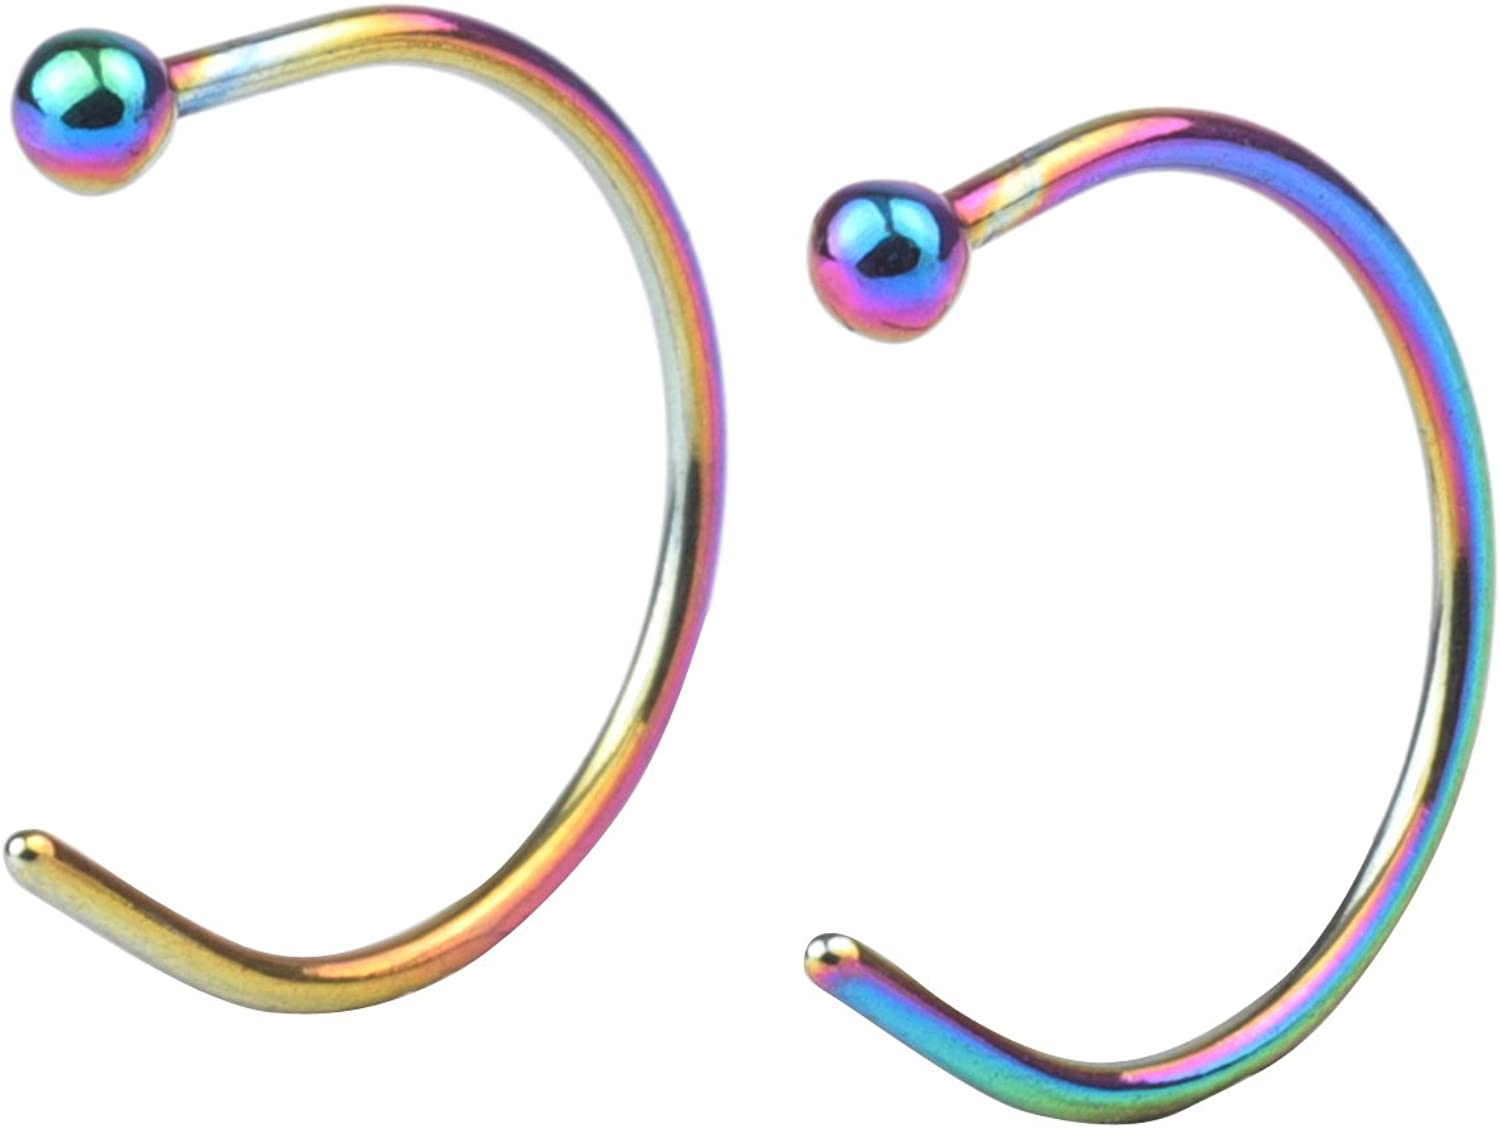 FORYOU FASHION Surgical Steel 20G 8mm Body Jewelry Piercing Earrings Nose Hoop Ring Unisex